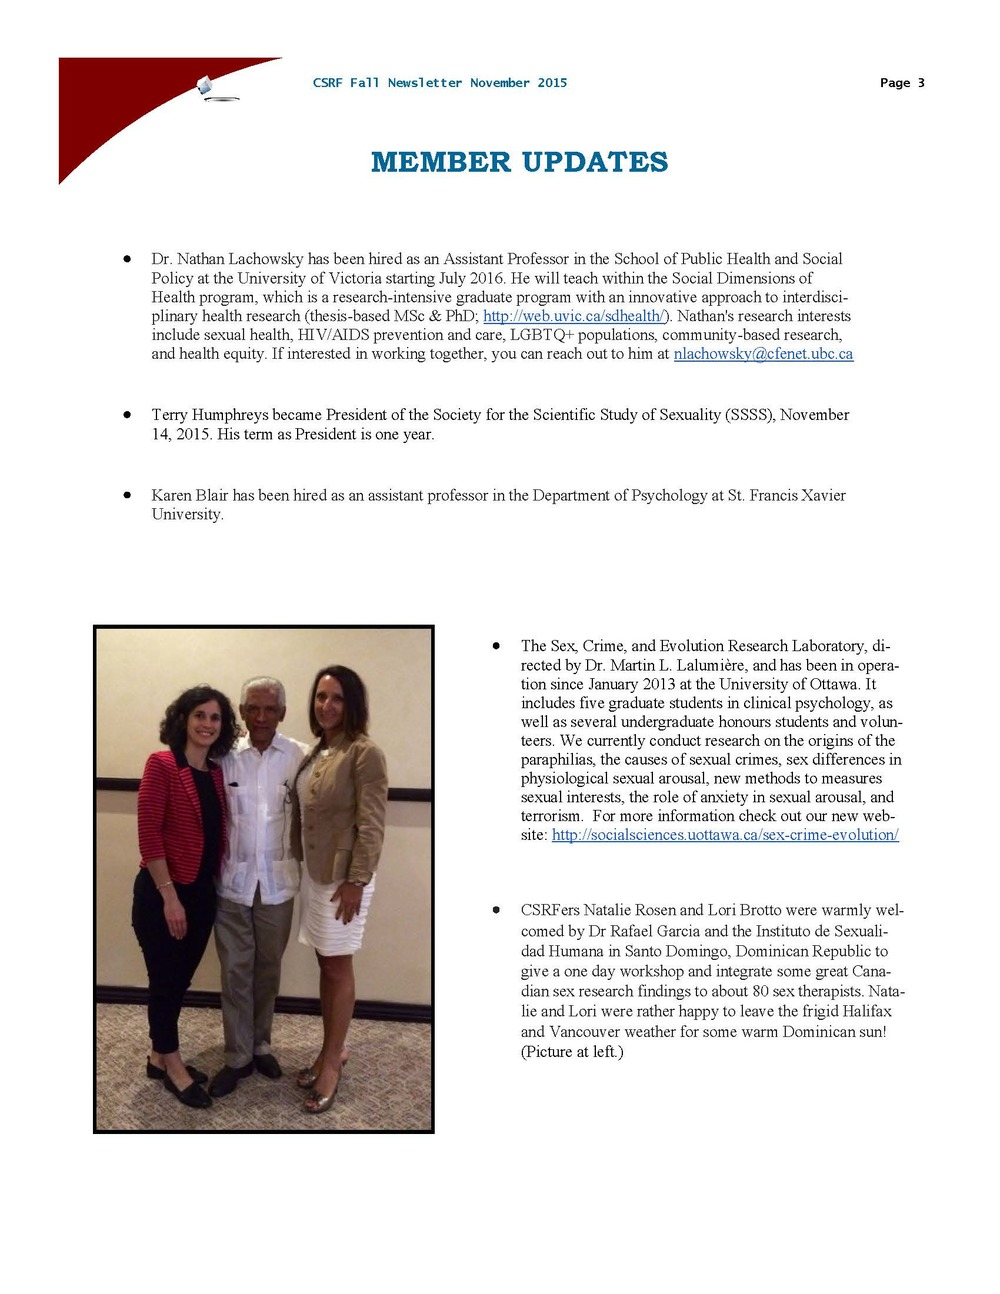 CSRF Fall Newsletter 2015_Page_03.jpg